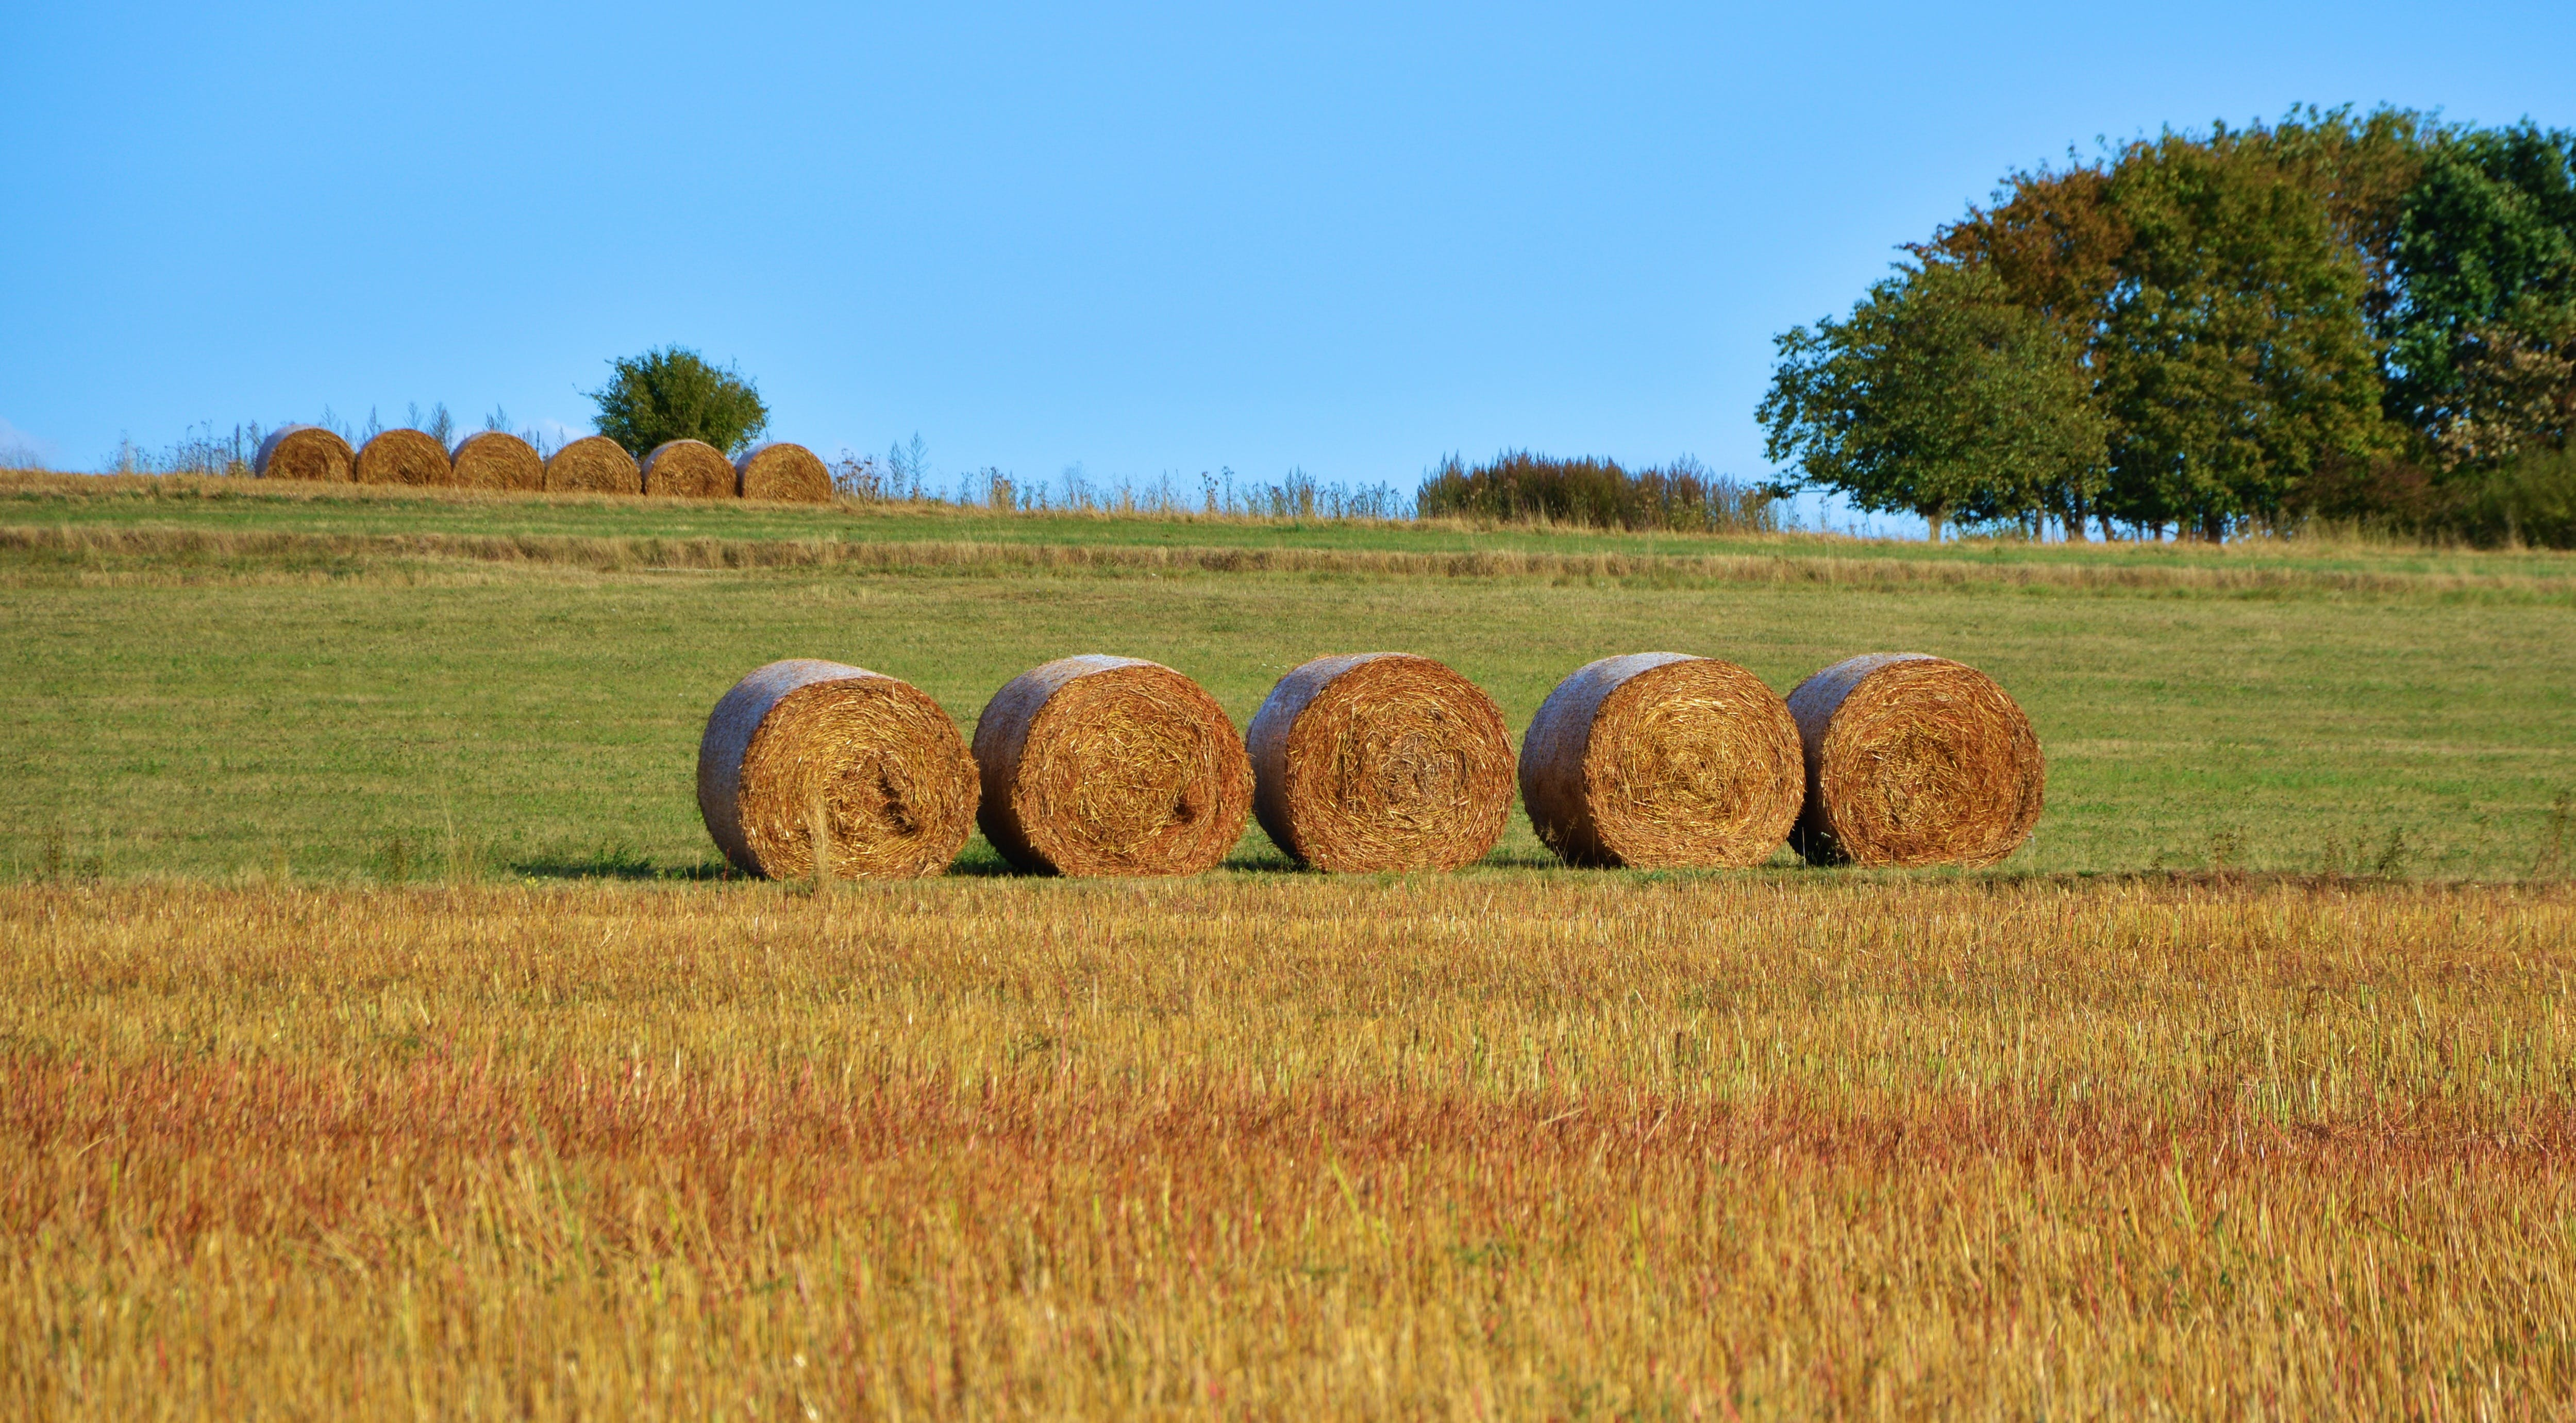 Five Rolled Hays on Farm Field